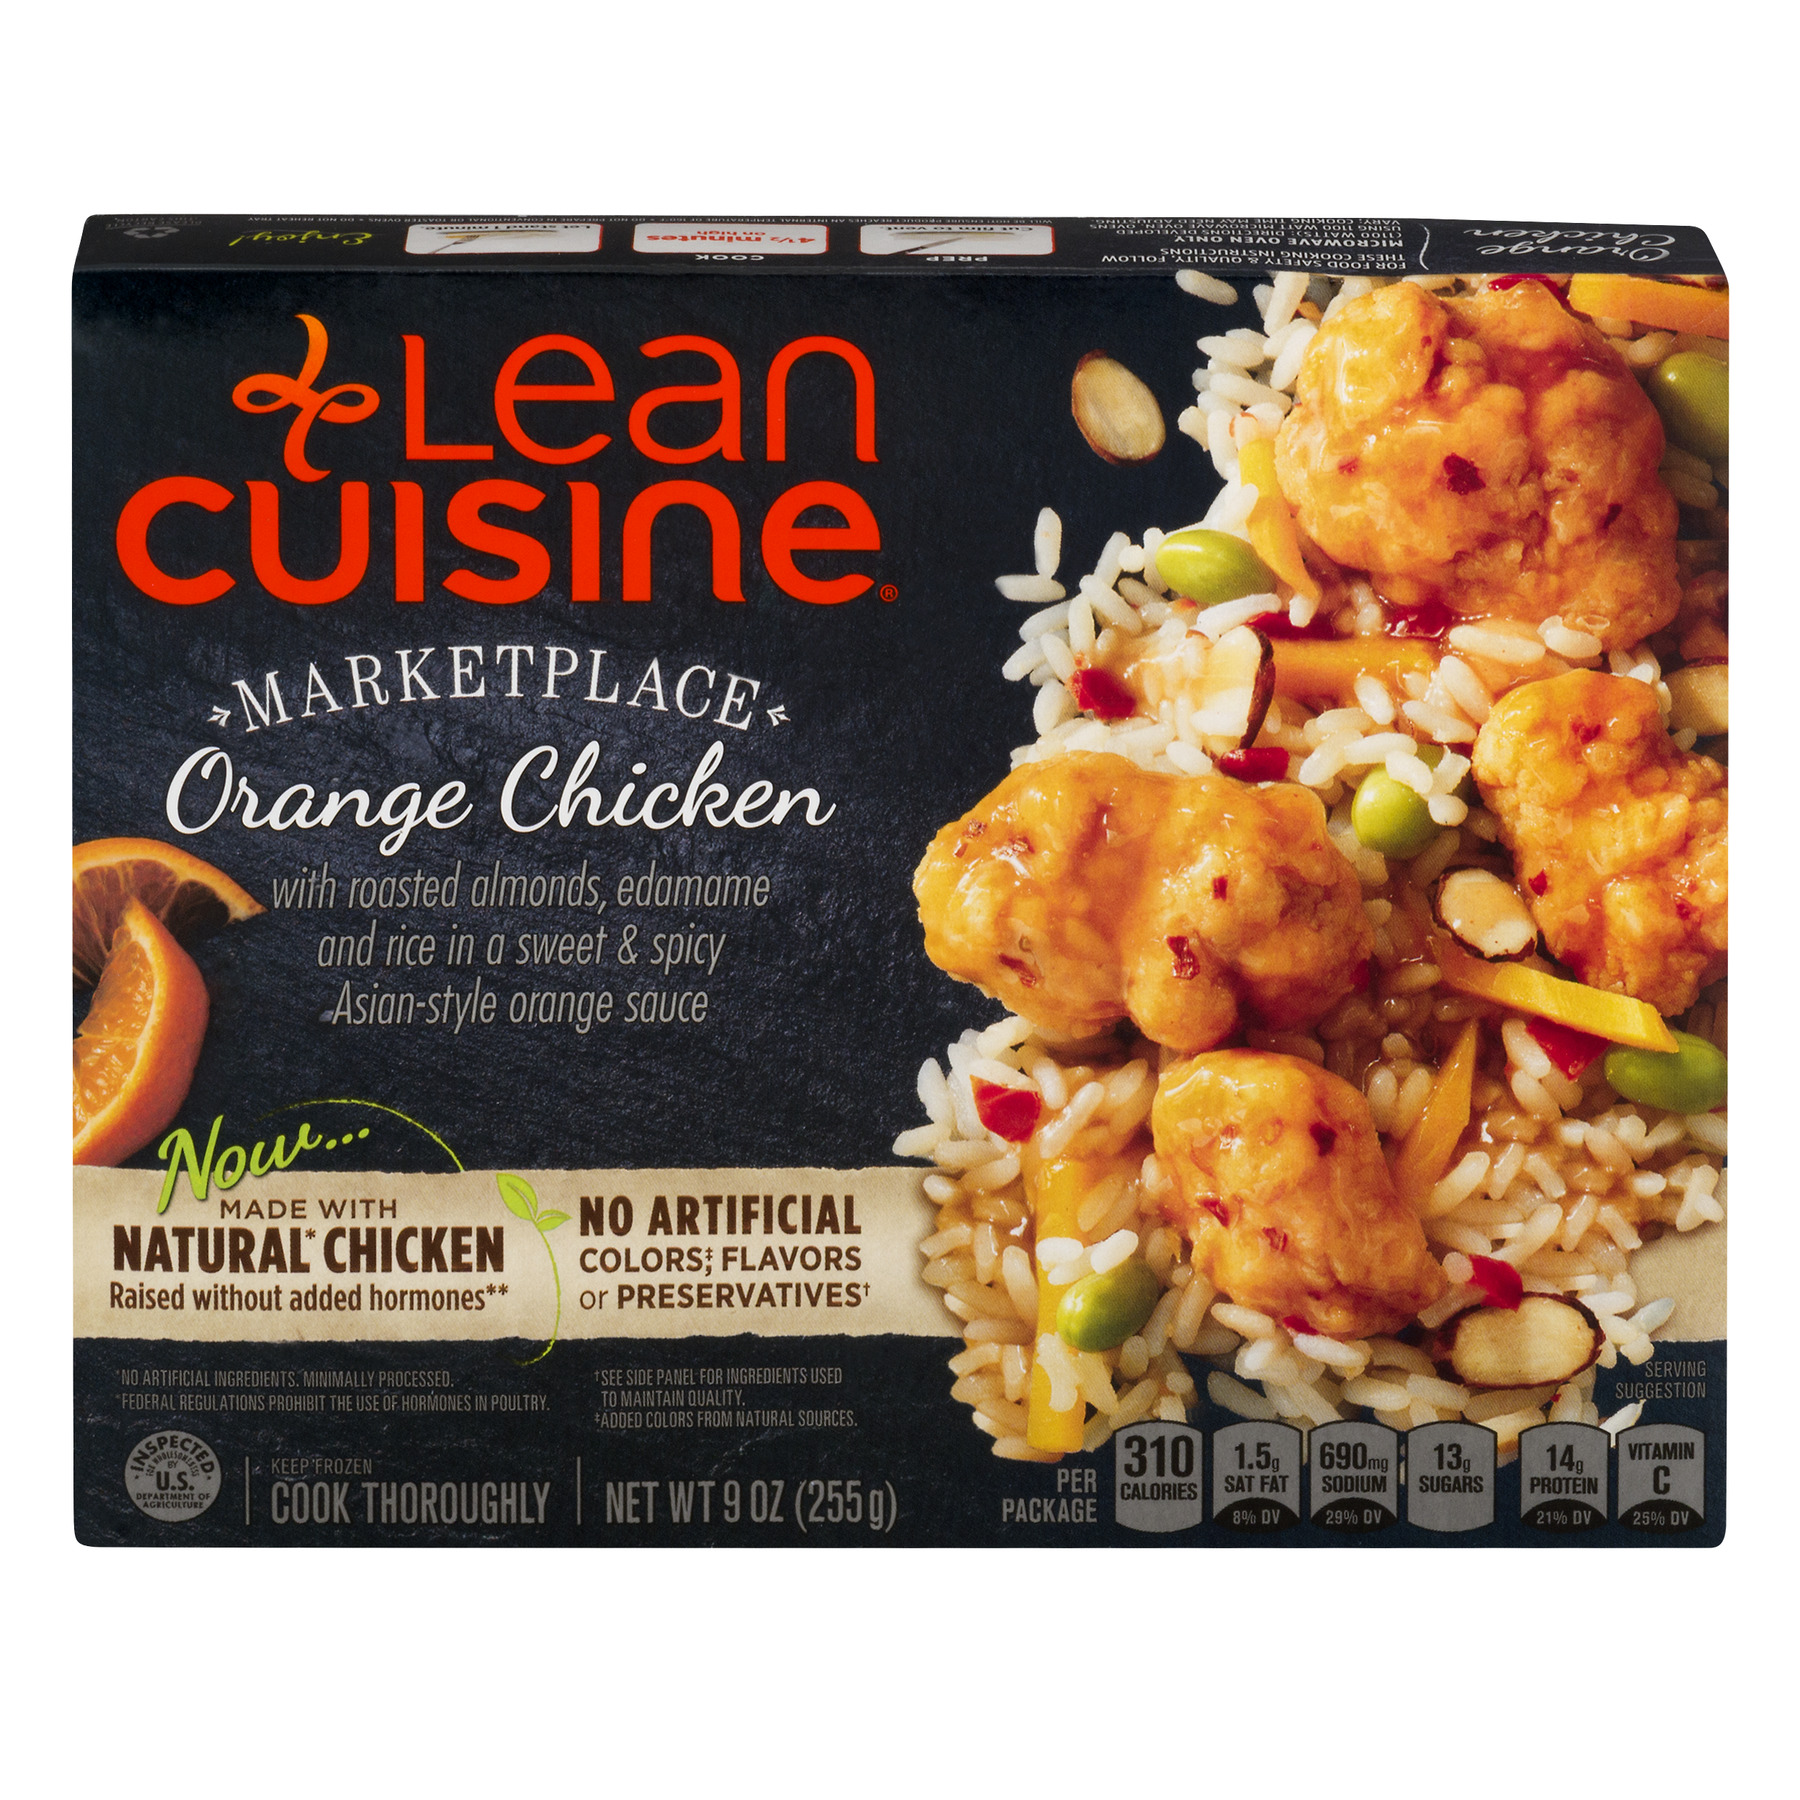 LEAN CUISINE MARKETPLACE Orange Chicken 9 oz. Box